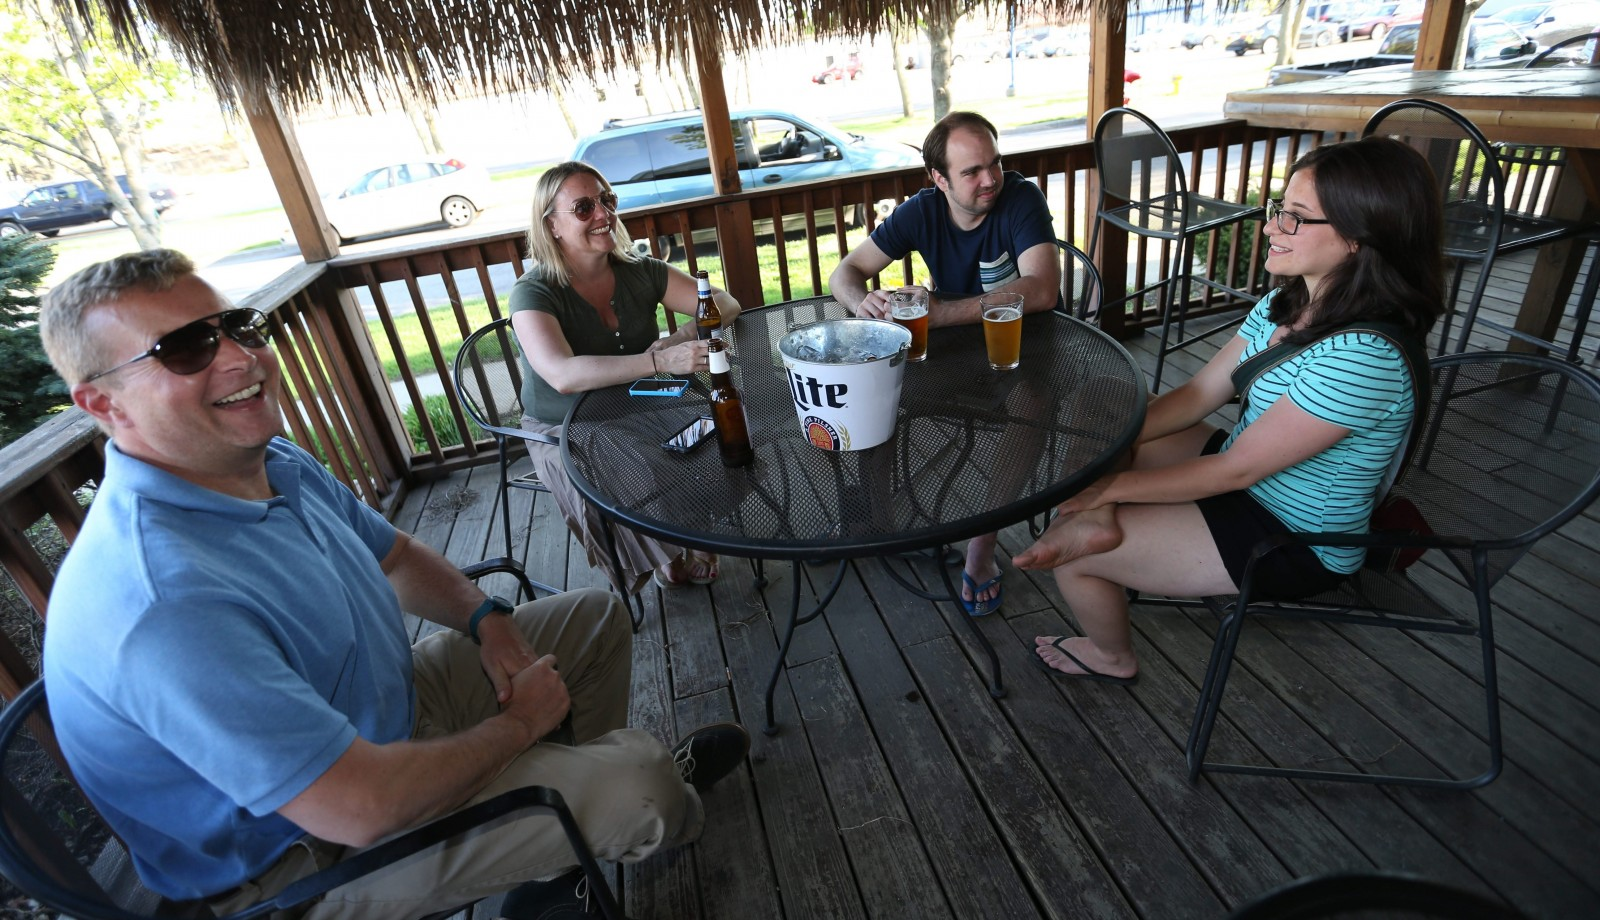 Joe Sygnatur, left, Lisa Heffle, her brother Sean Heffle and Bethany Cinelli enjoy the pleasant weather on the patio at Rafferty's Bar & Grill. (Sharon Cantillon/Buffalo News)